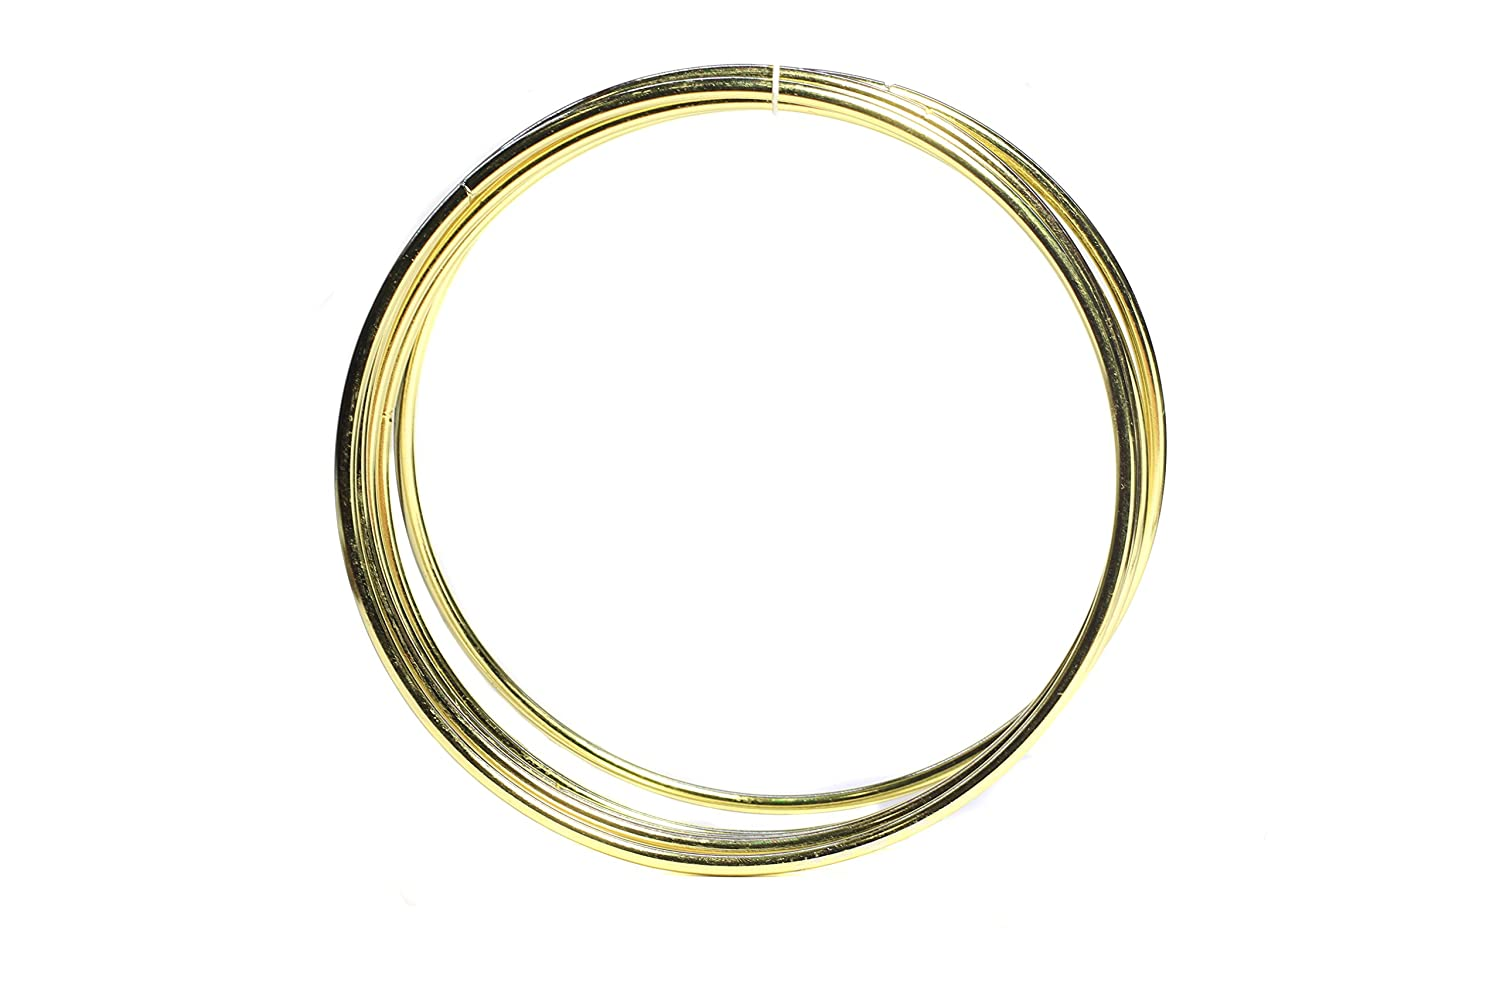 2-inch gold Dream Catcher Metal Rings Set of 5pcs Gold Dream Catcher Metal Hoops, Bistore